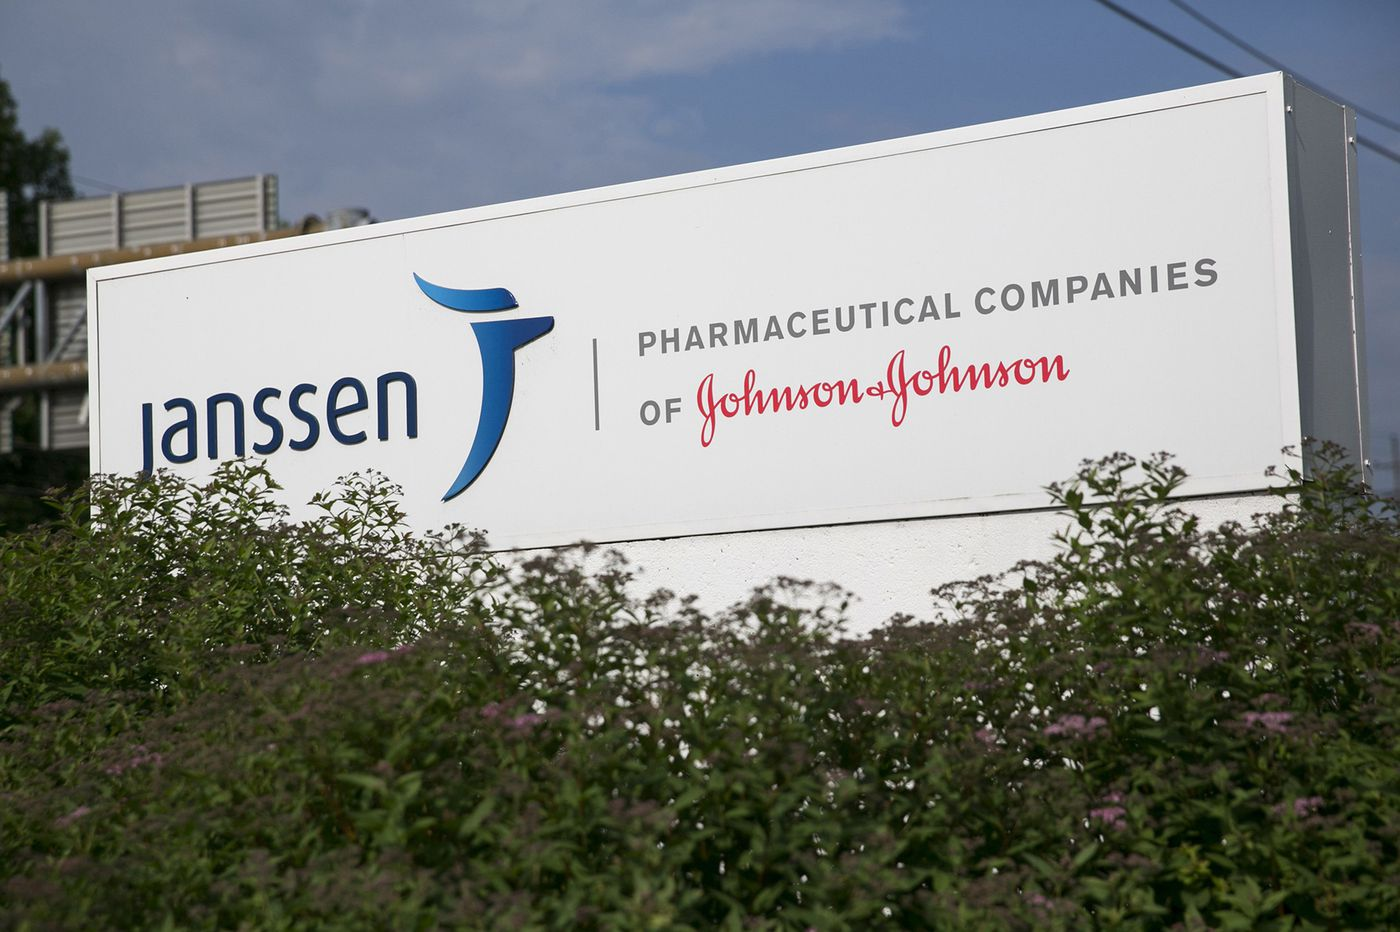 J&J says no legal reserves needed amid wave of lawsuits